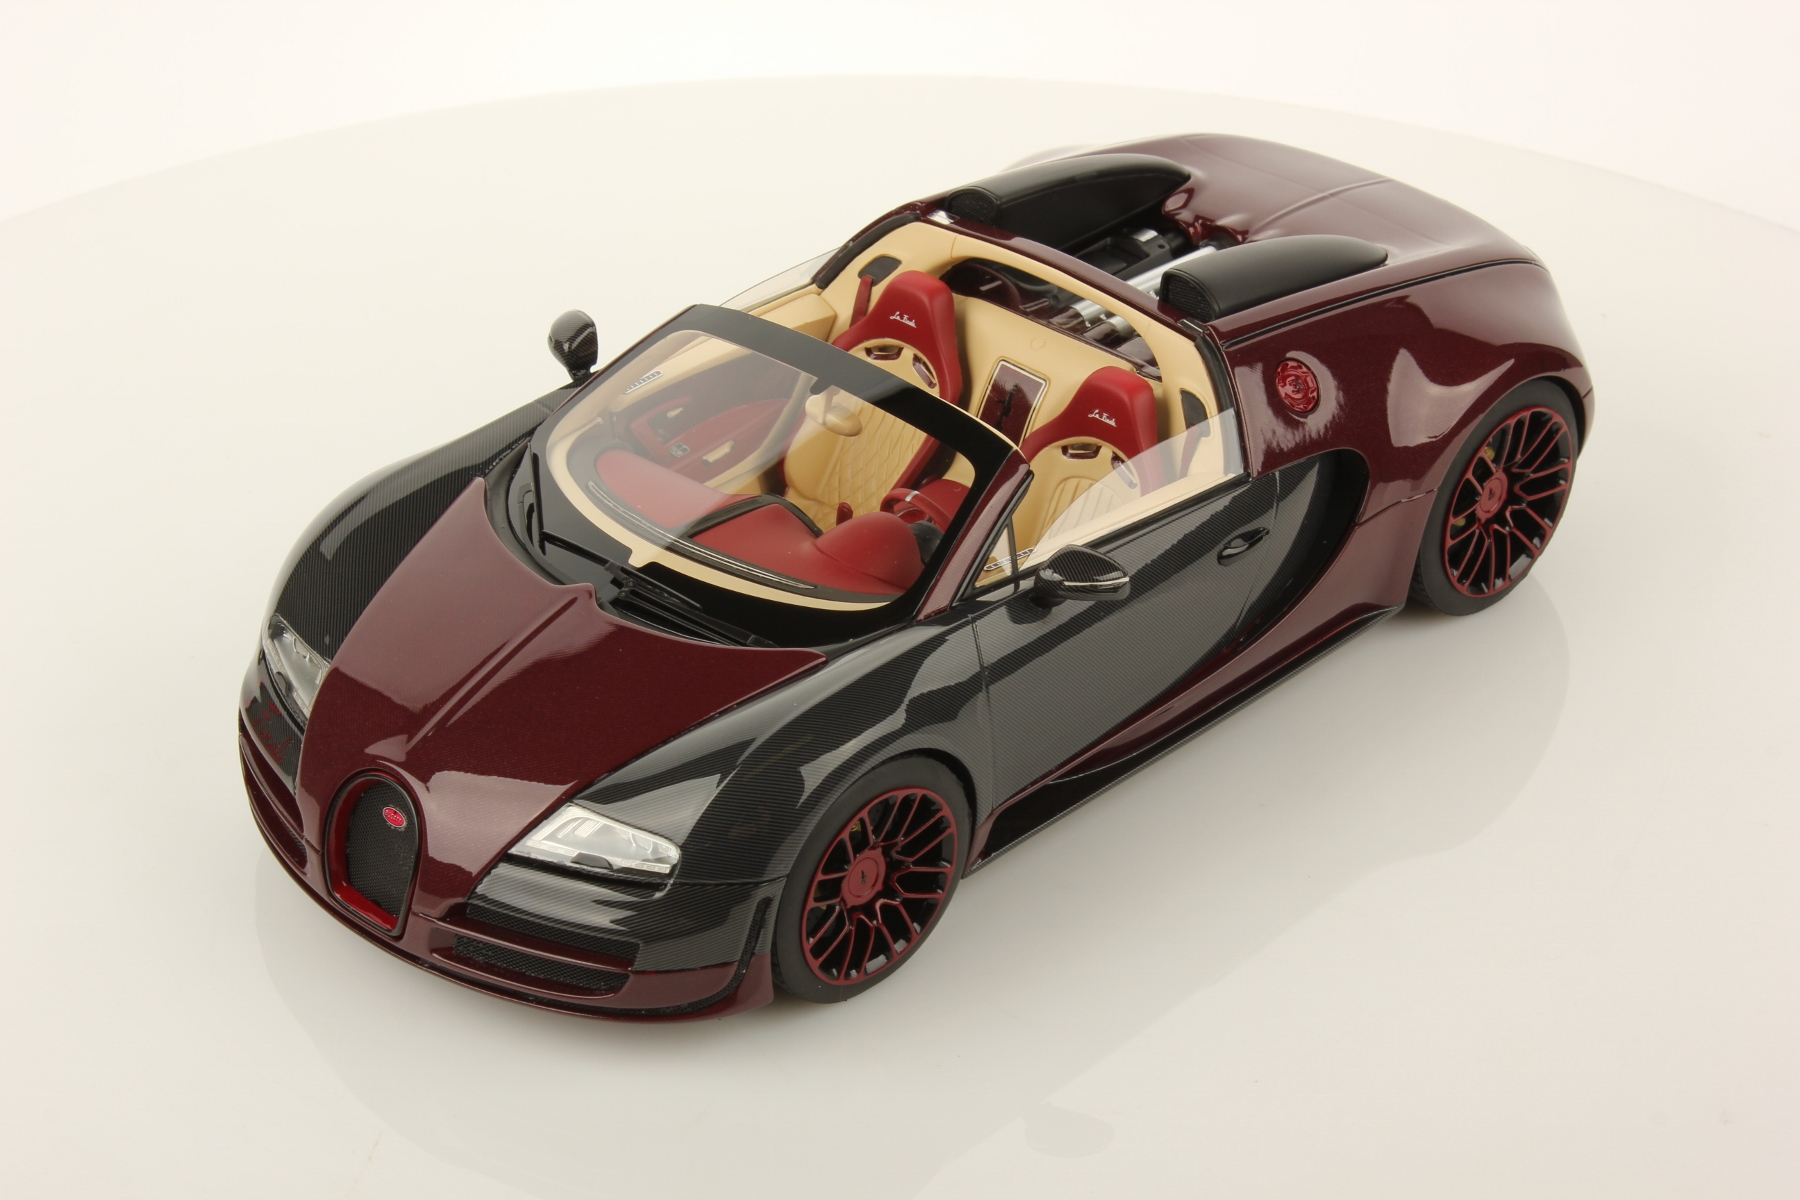 bugatti veyron 16 4 grand sport vitesse la finale 1 18. Black Bedroom Furniture Sets. Home Design Ideas